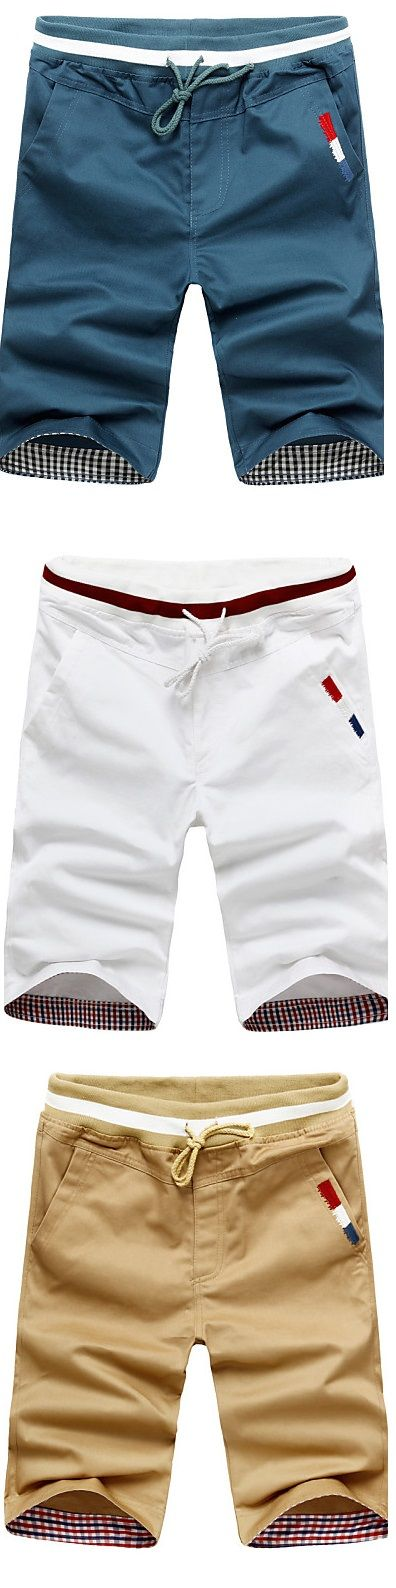 The perfect summer shorts! What's your preferred color? Get'em at $9.79 during our summer sales! Remember to use code SUMMER20 for an extra discount when you spend $180+